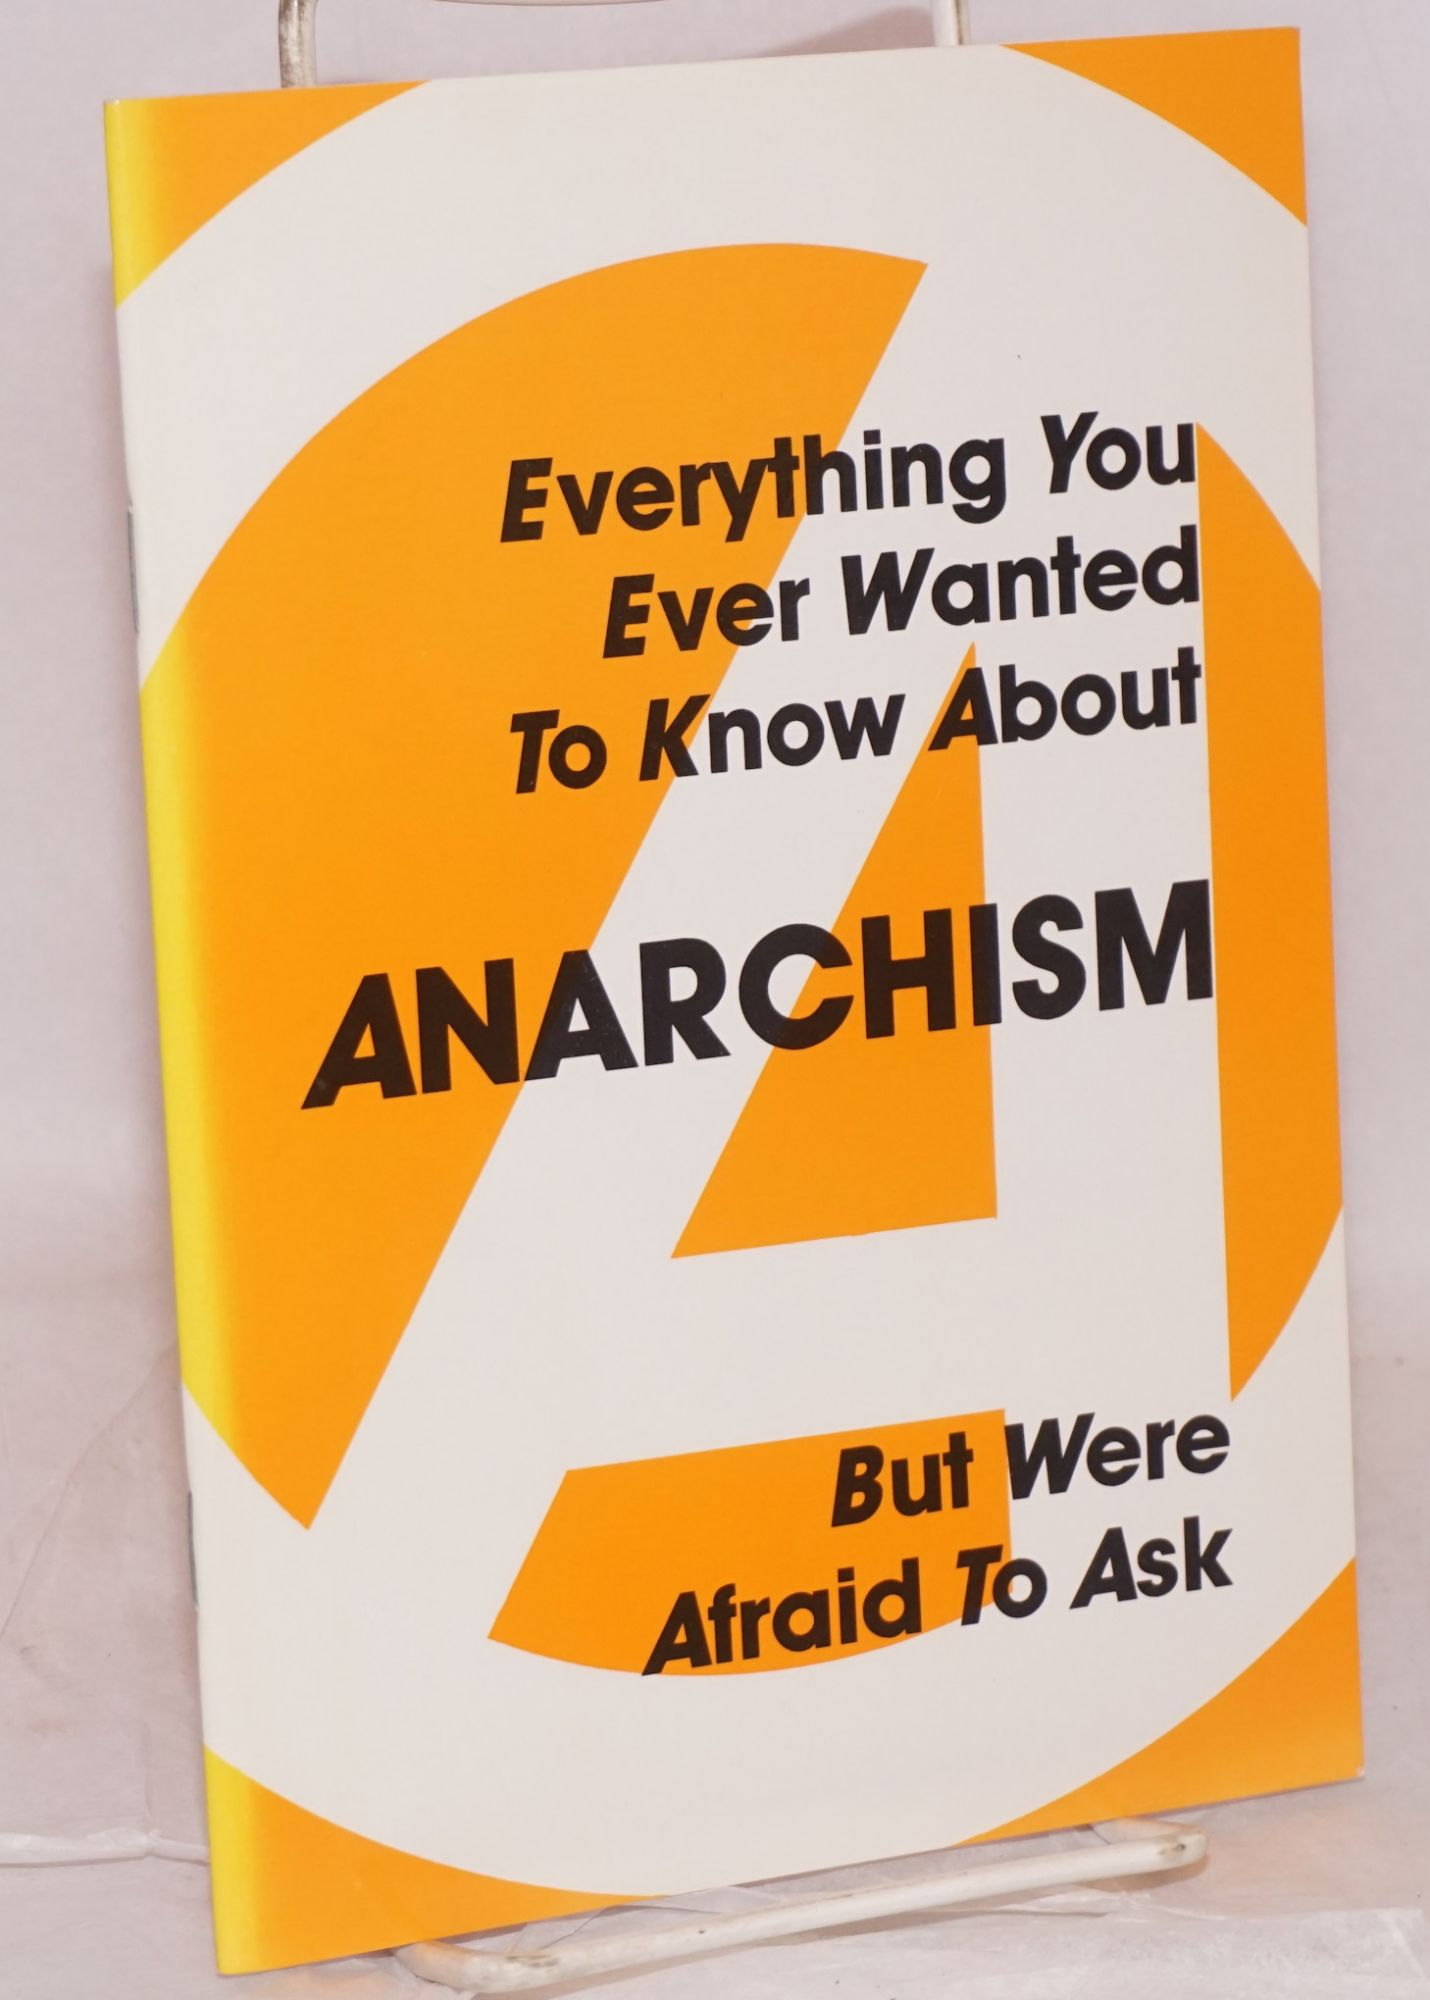 Everything You Ever Wanted To Know About Anarchism, But Were Afraid To Ask